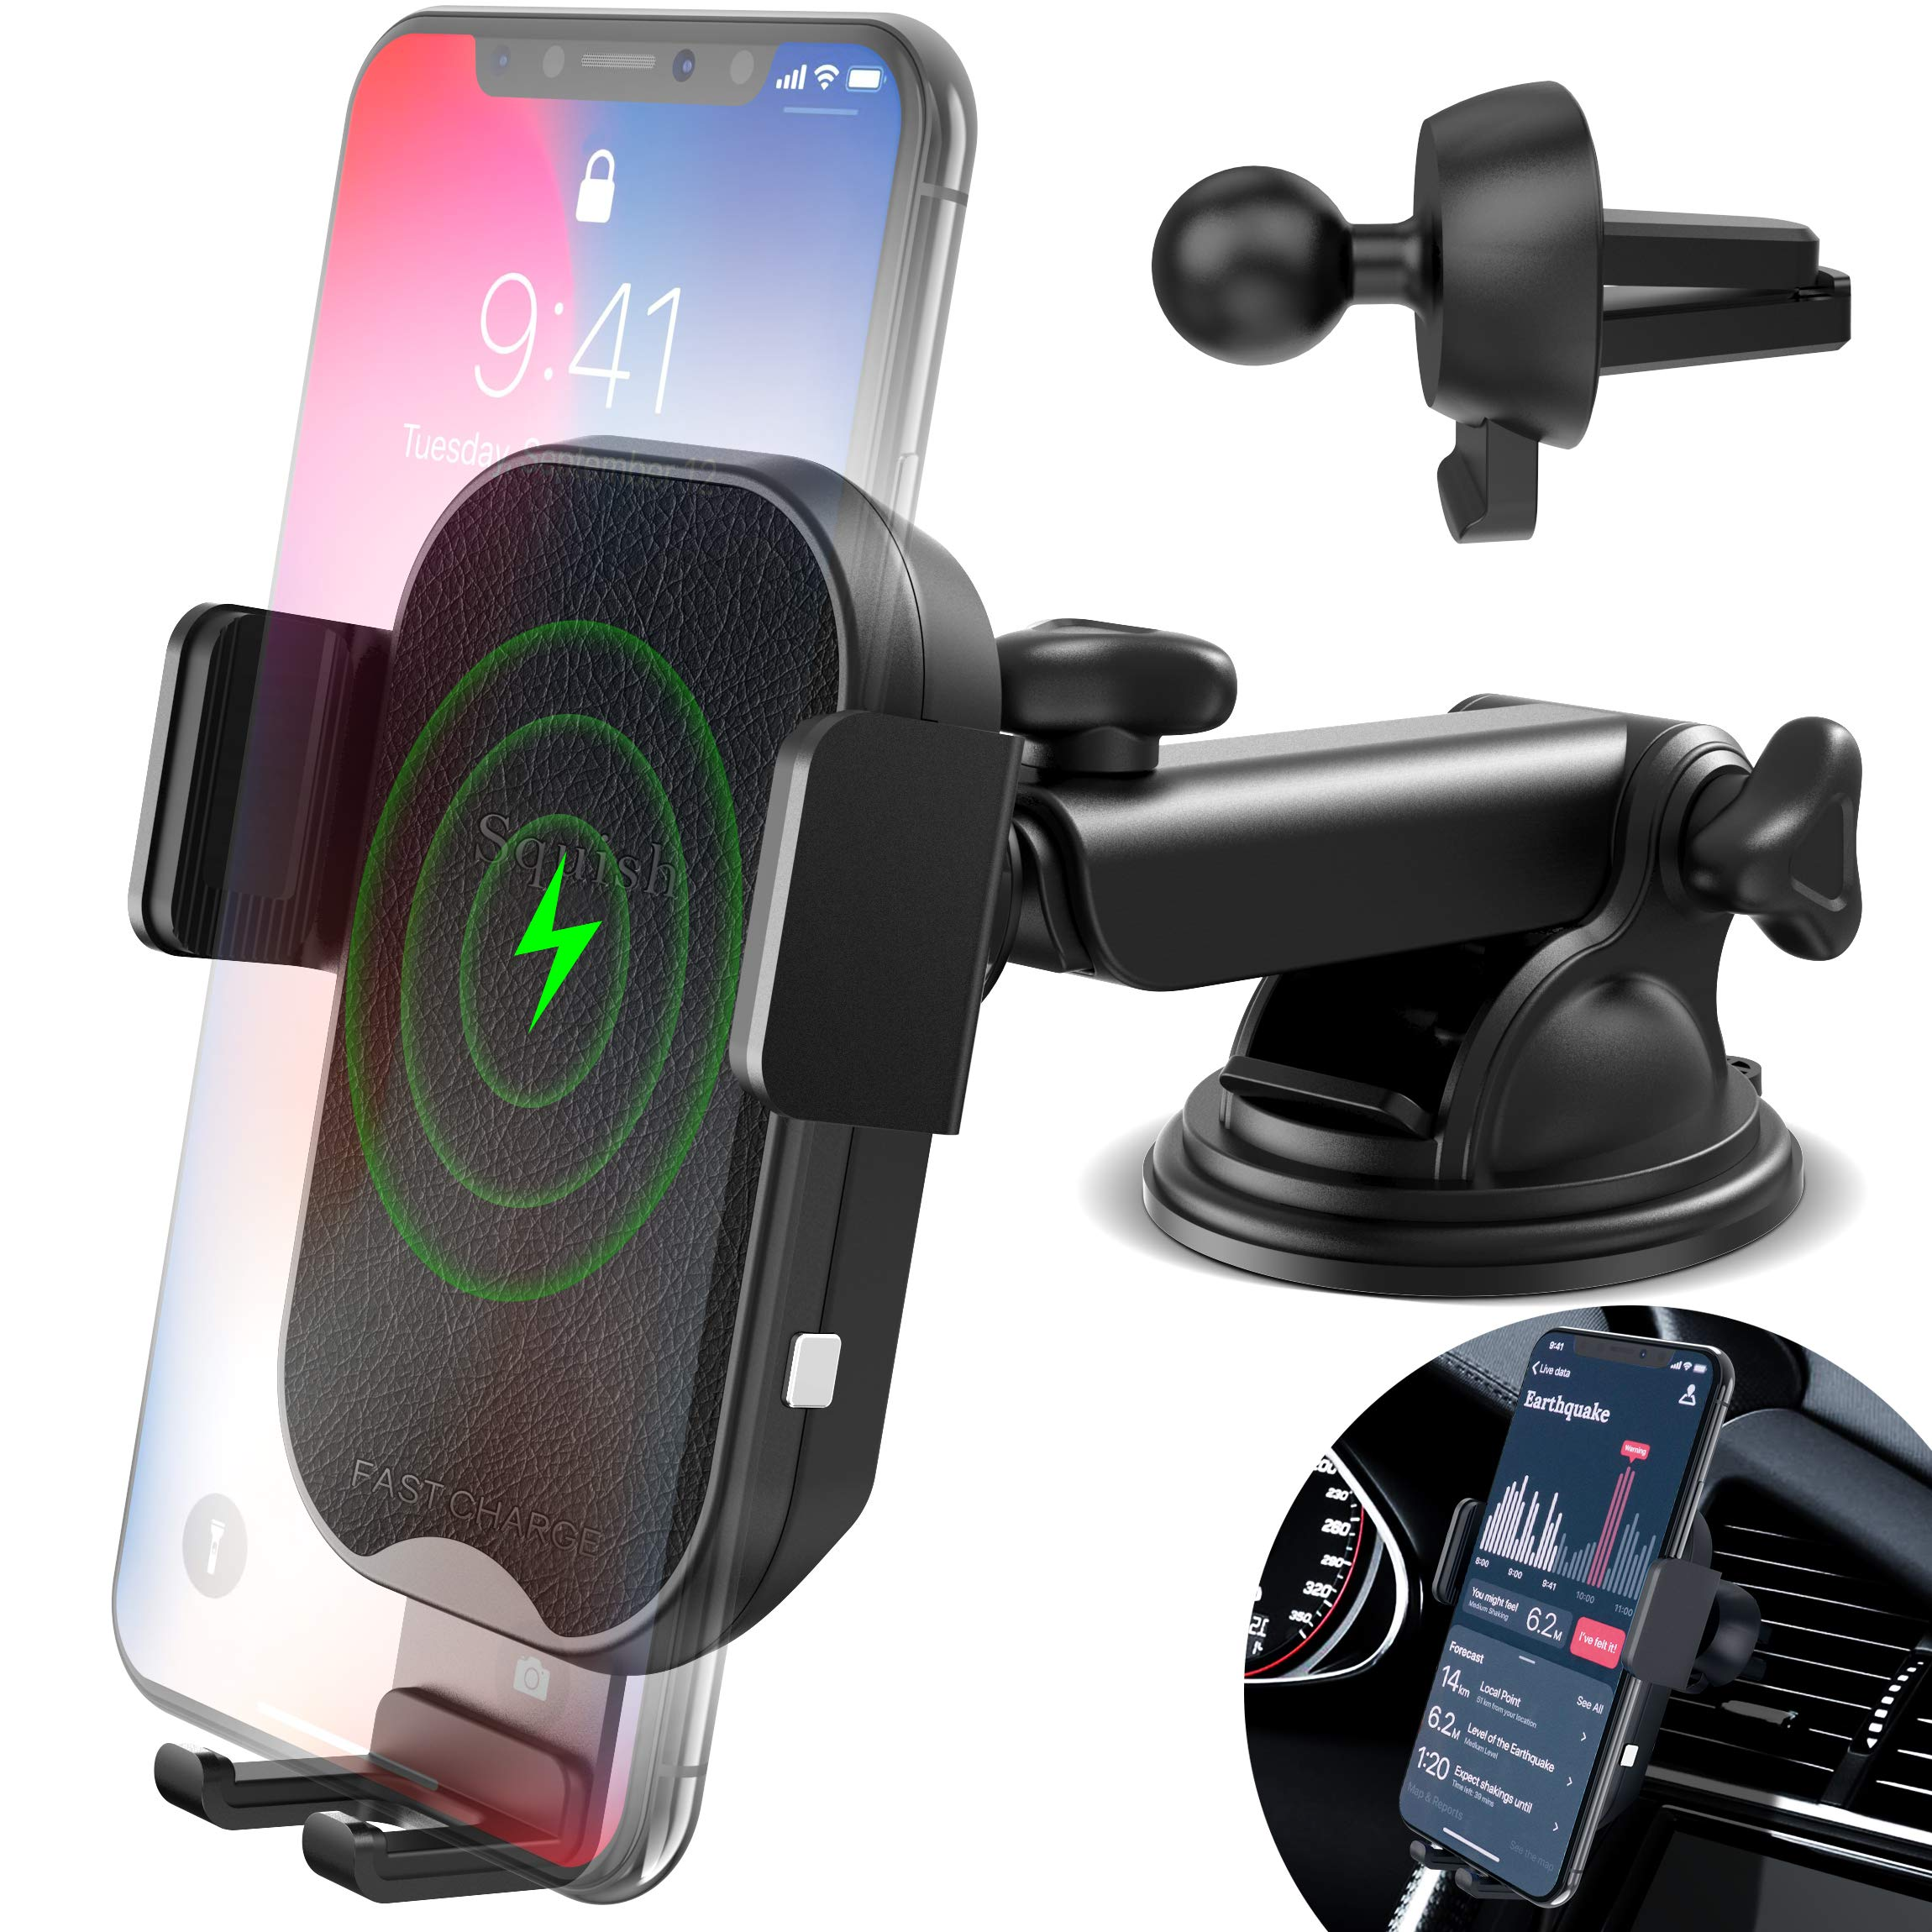 Wireless Charger Car Phone Mount, Squish Fast Charging Qi Wireless Car Charger, Auto Clamping Car Phone Holder for Air Vent Dashboard for iPhone Xs Max/XS/XR/X/8Plus/8 and Samsung S10 S9 S8 Note 9 8 7 by squish